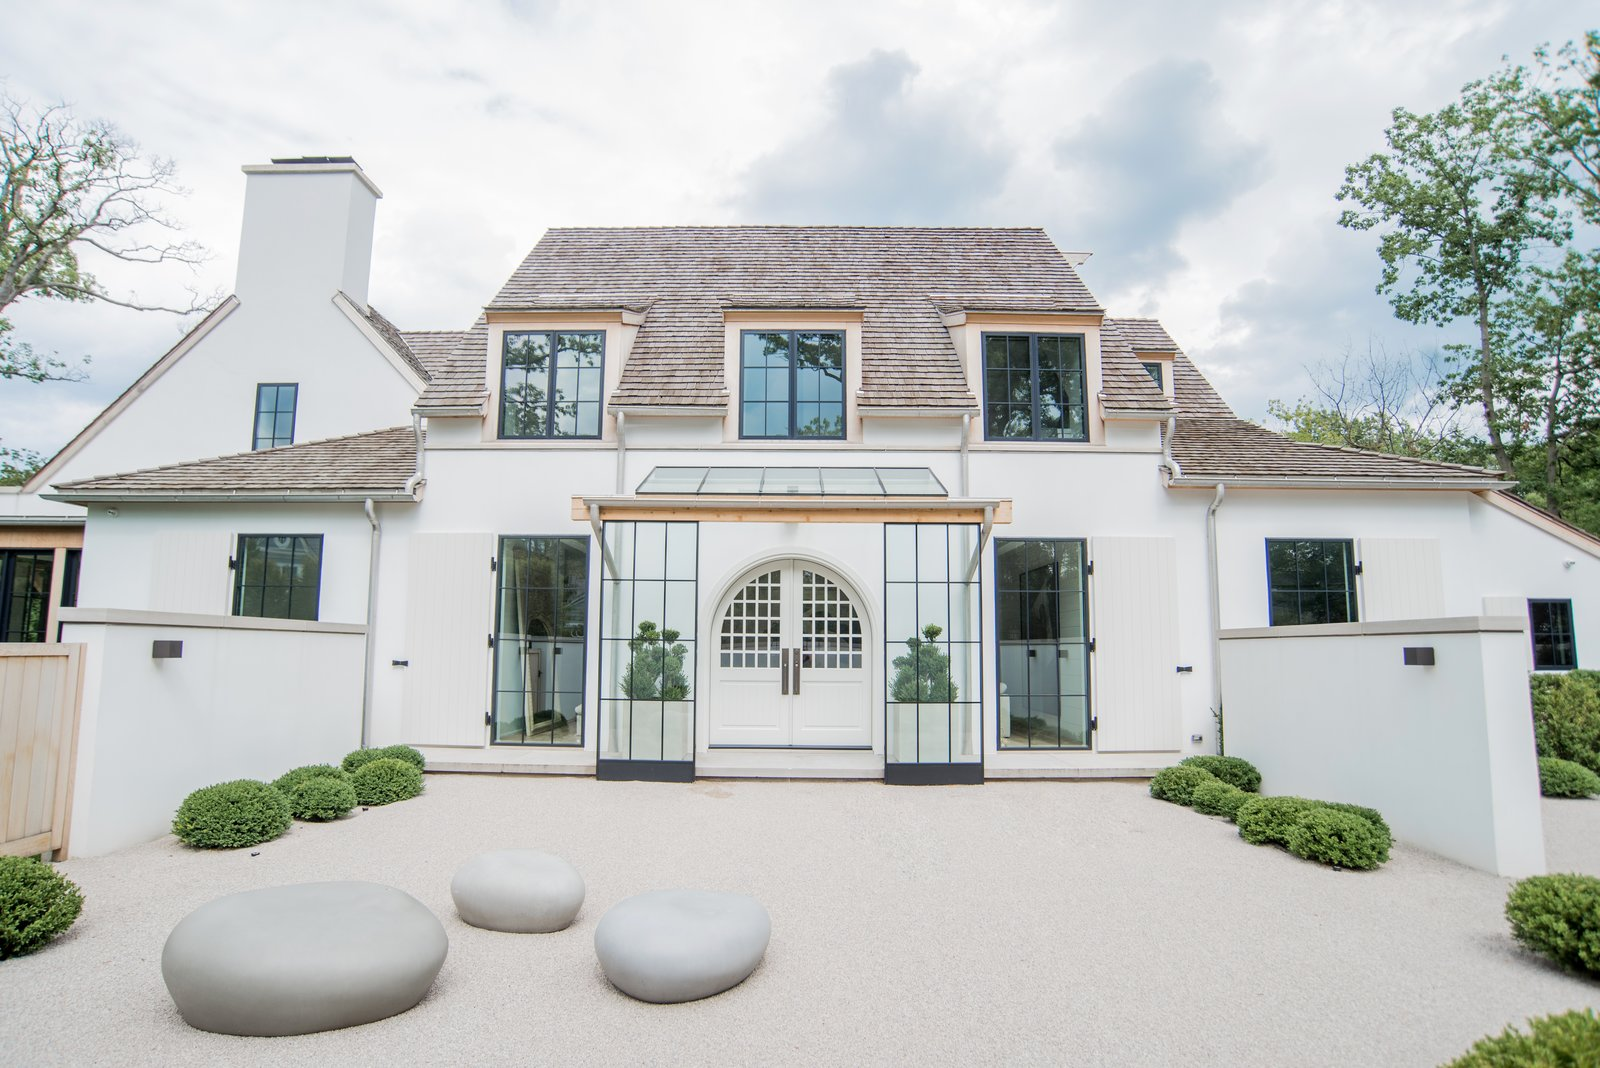 Exterior, House Building Type, Farmhouse Building Type, and Stucco Siding Material Home exterior features white stucco, cedar wood trim, custom black window frames and handmade front door from Poland.  Beautiful Belgian-inspired Farmhouse